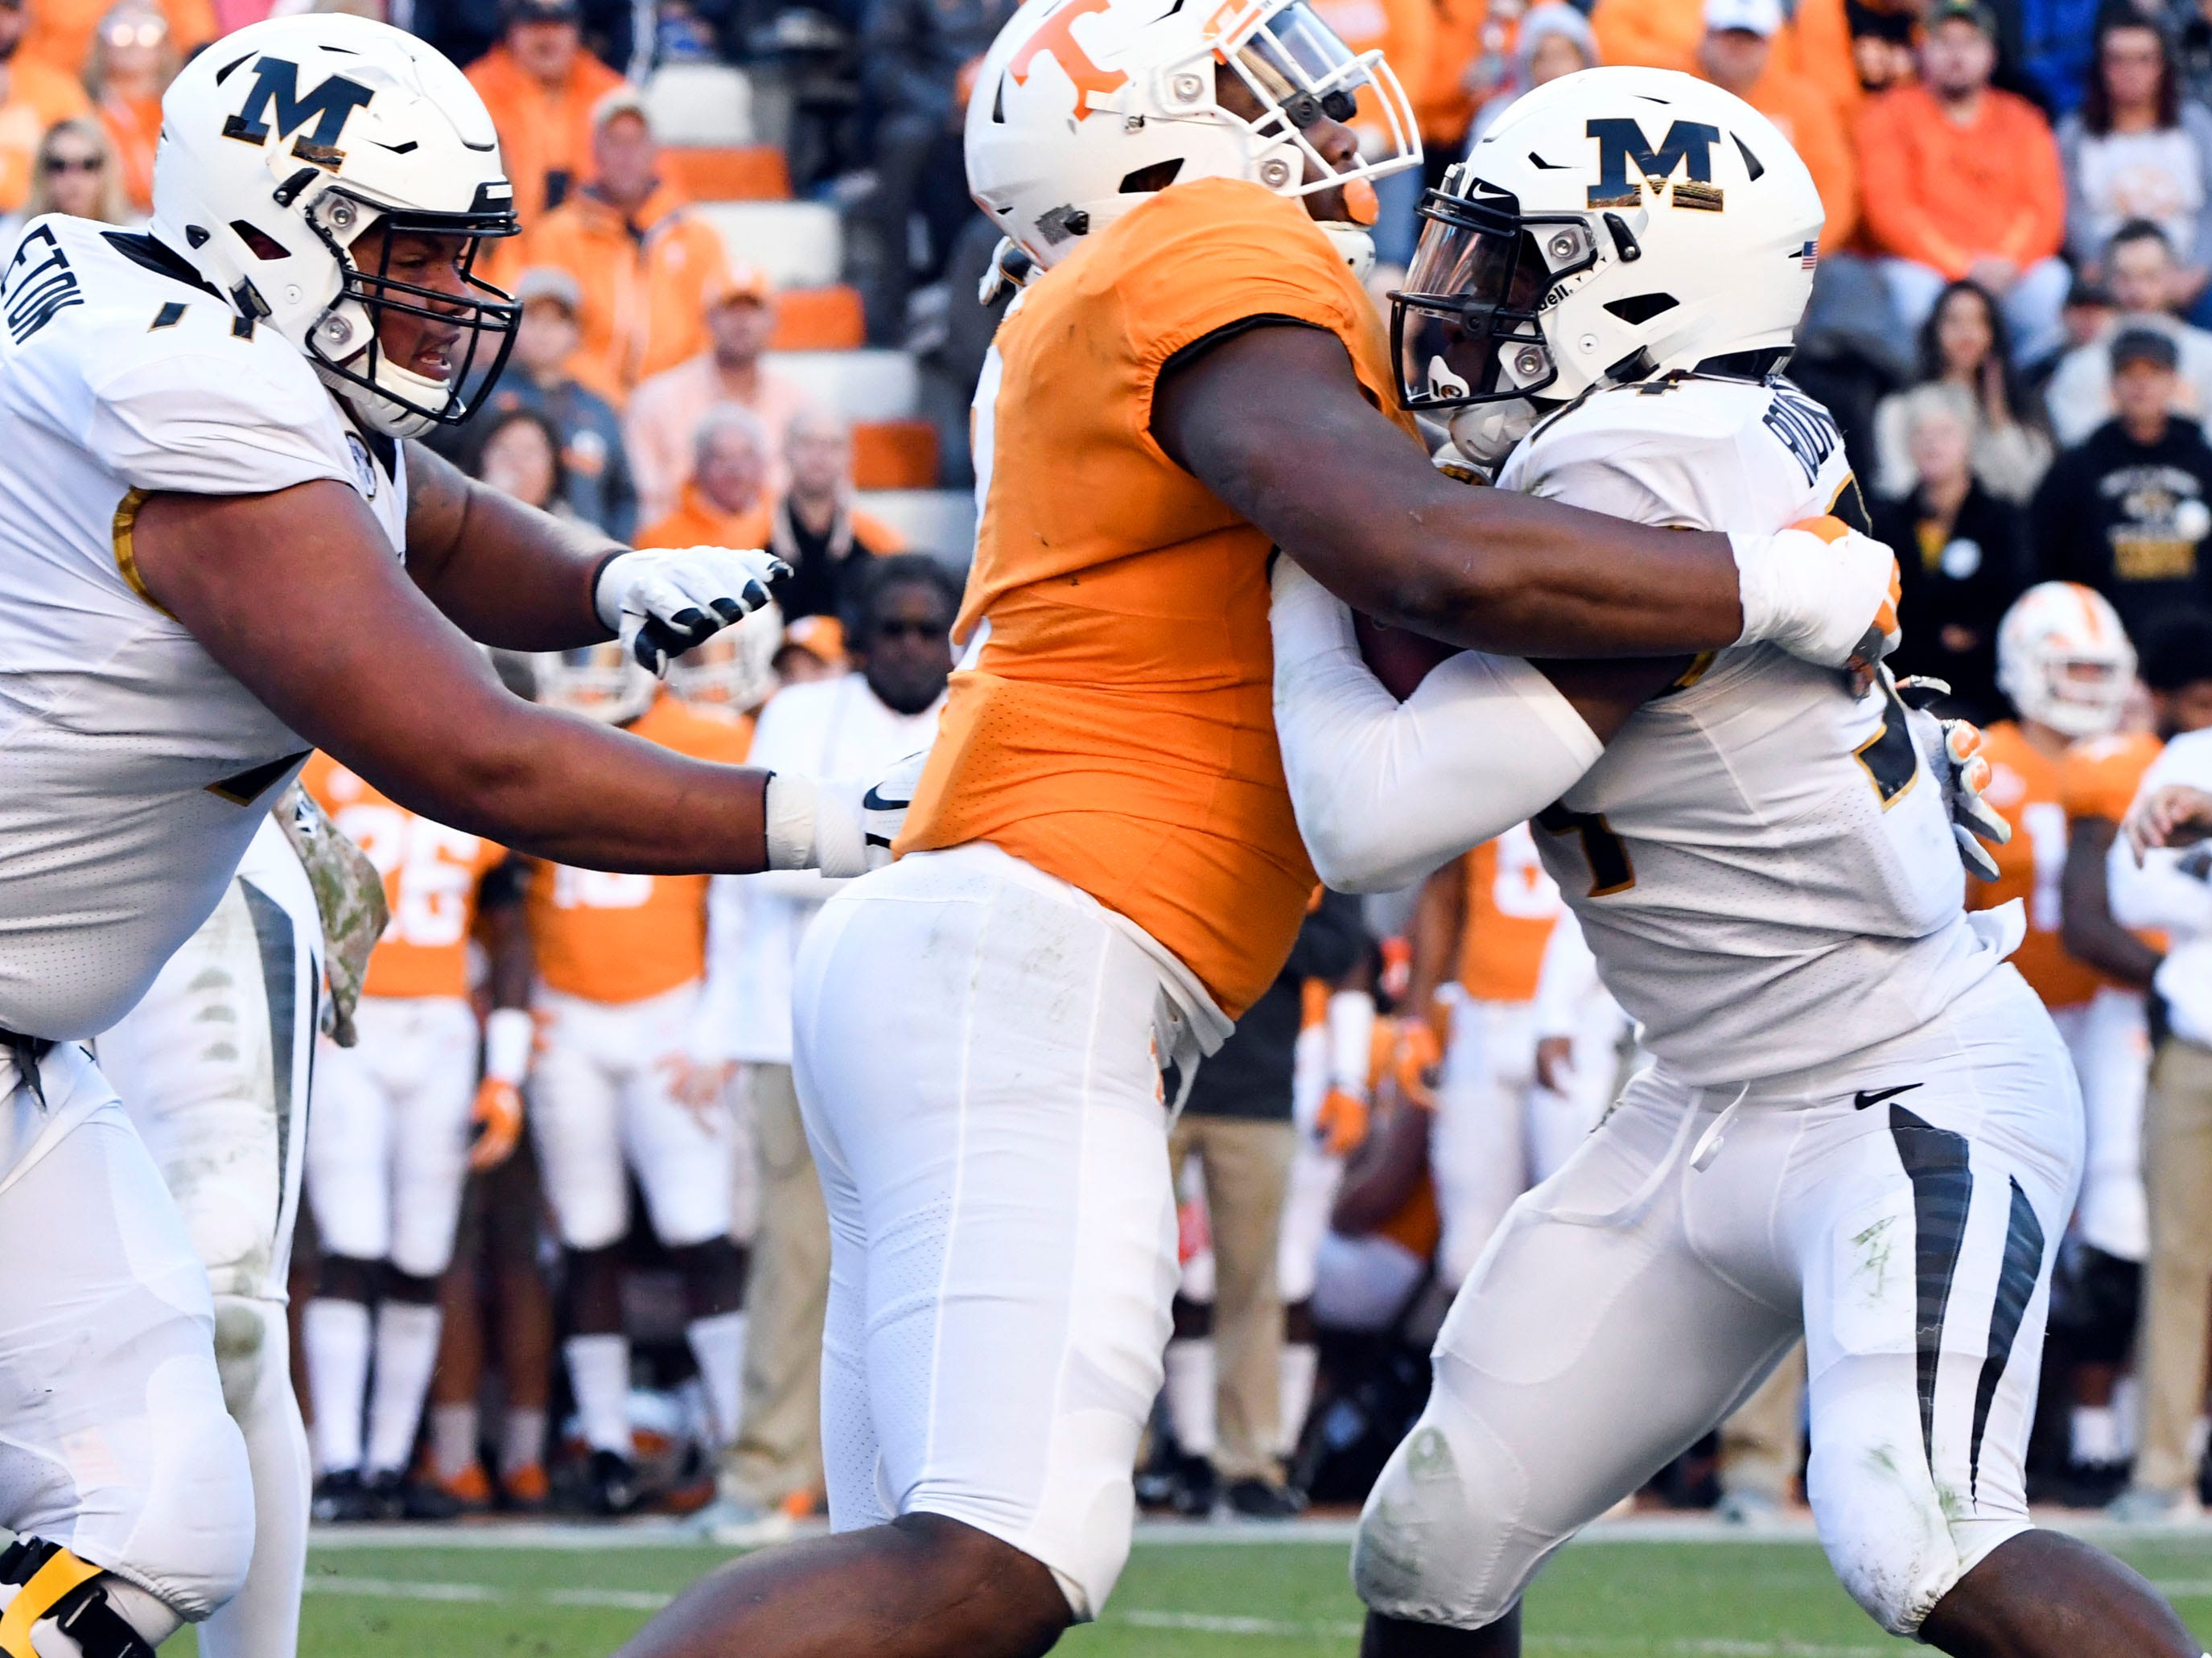 Tennessee defensive lineman Shy Tuttle (2) stop Missouri running back Larry Rountree III (34) during the Tennessee and Missouri football game on Saturday, November 17, 2018.